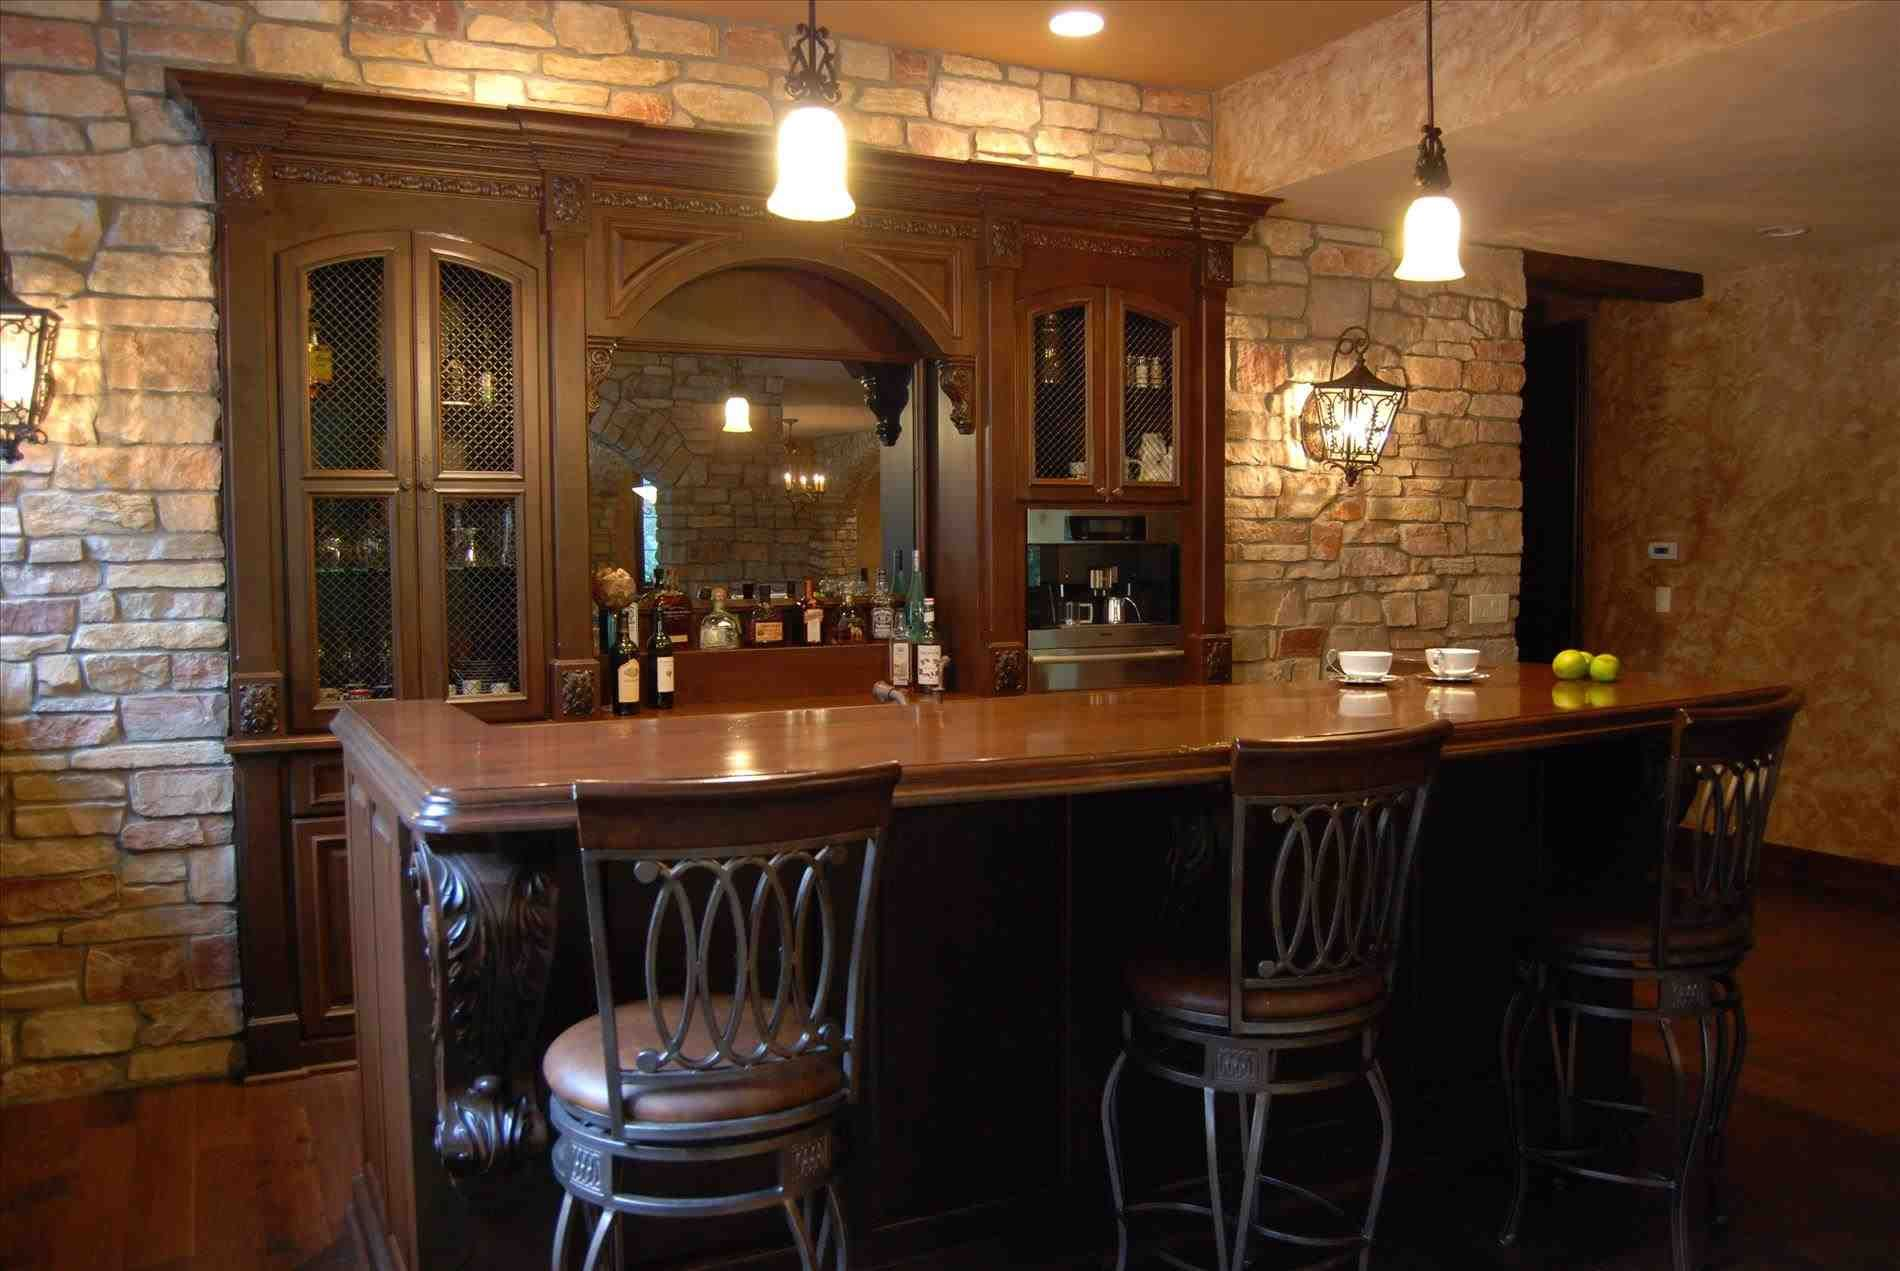 New Post residential bar ideas | Bars | Pinterest | Bar